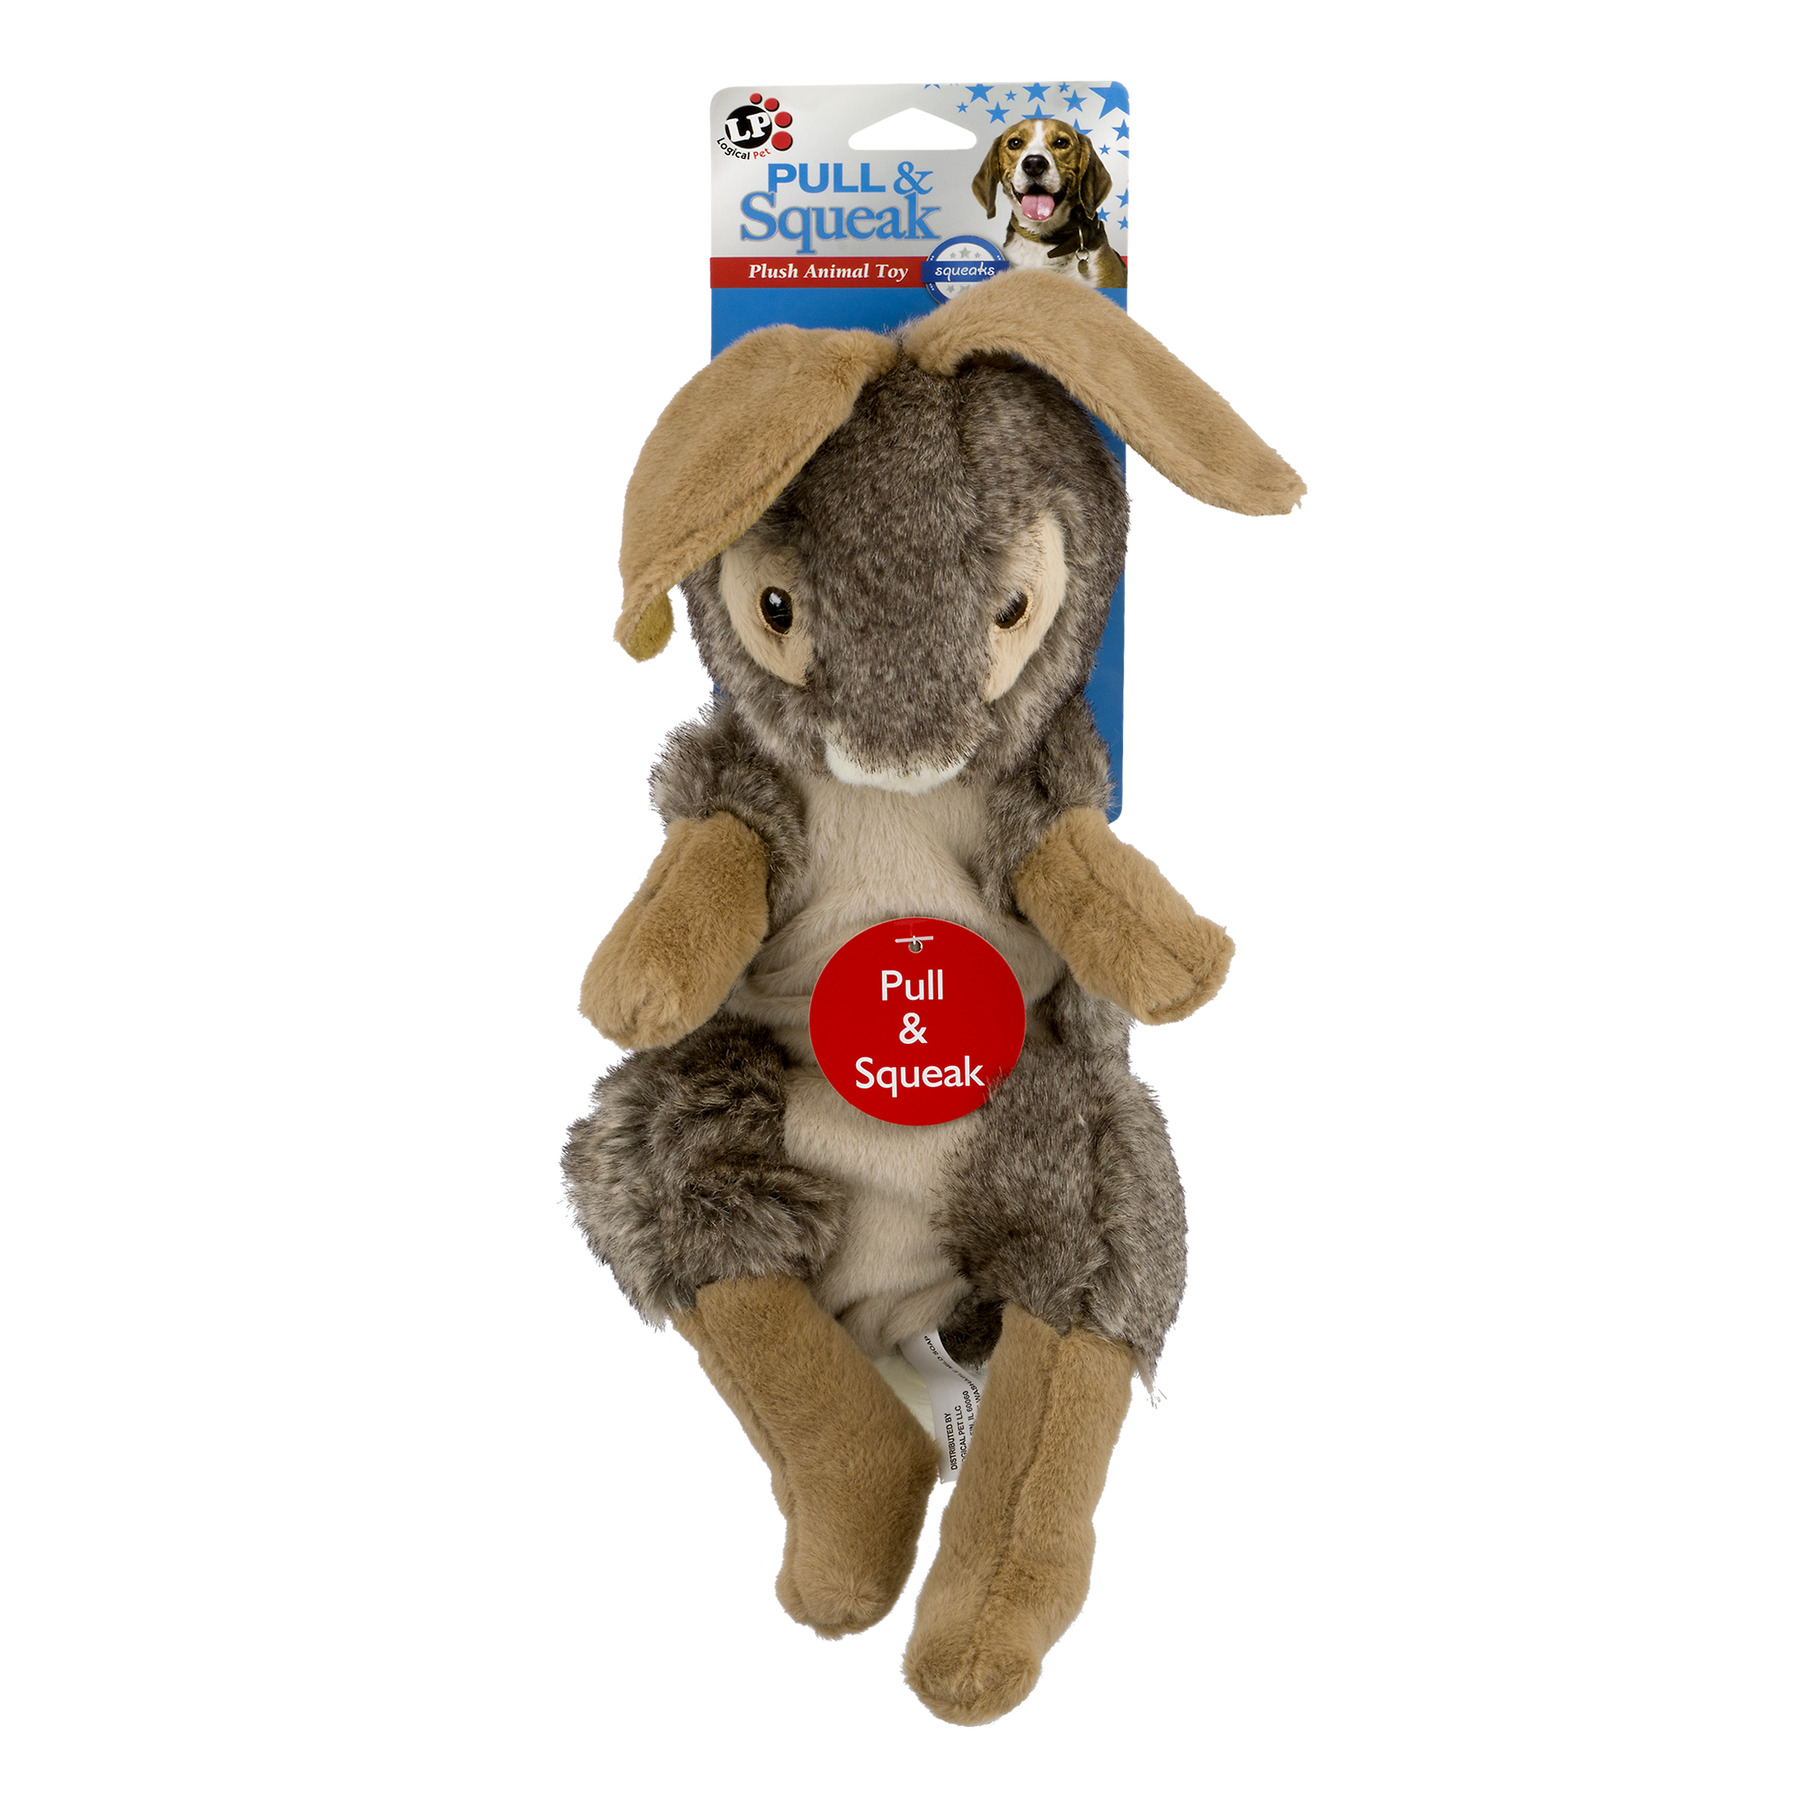 Logical Pet Pull & Squeak Rabbit Dog Toy, 1.0 CT by Pet Factory, Inc.